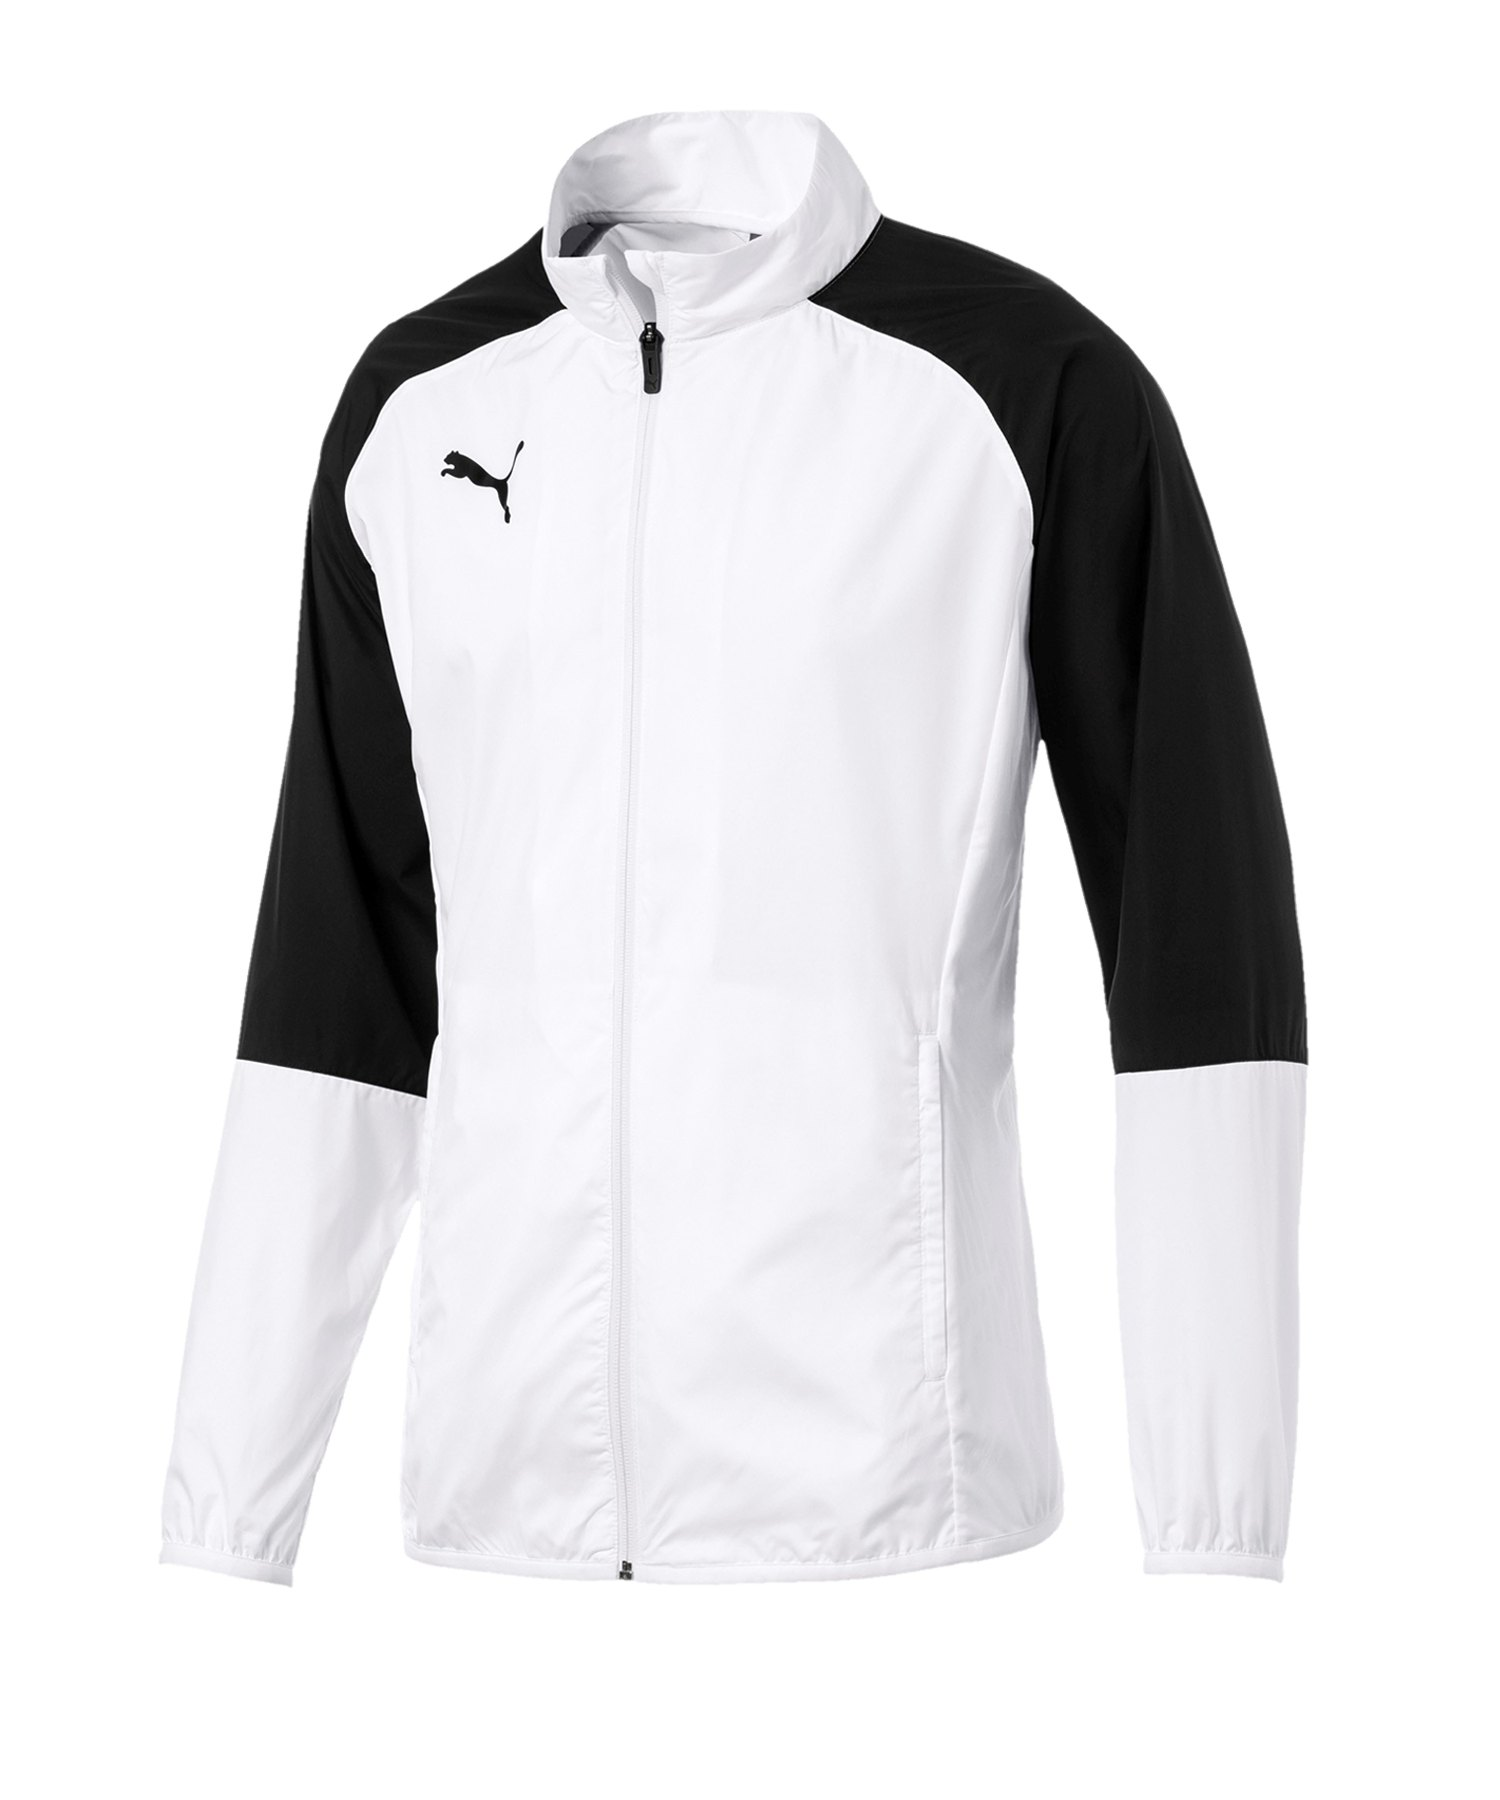 PUMA CUP Sideline Core Woven Jacket Weiss F04 - weiss